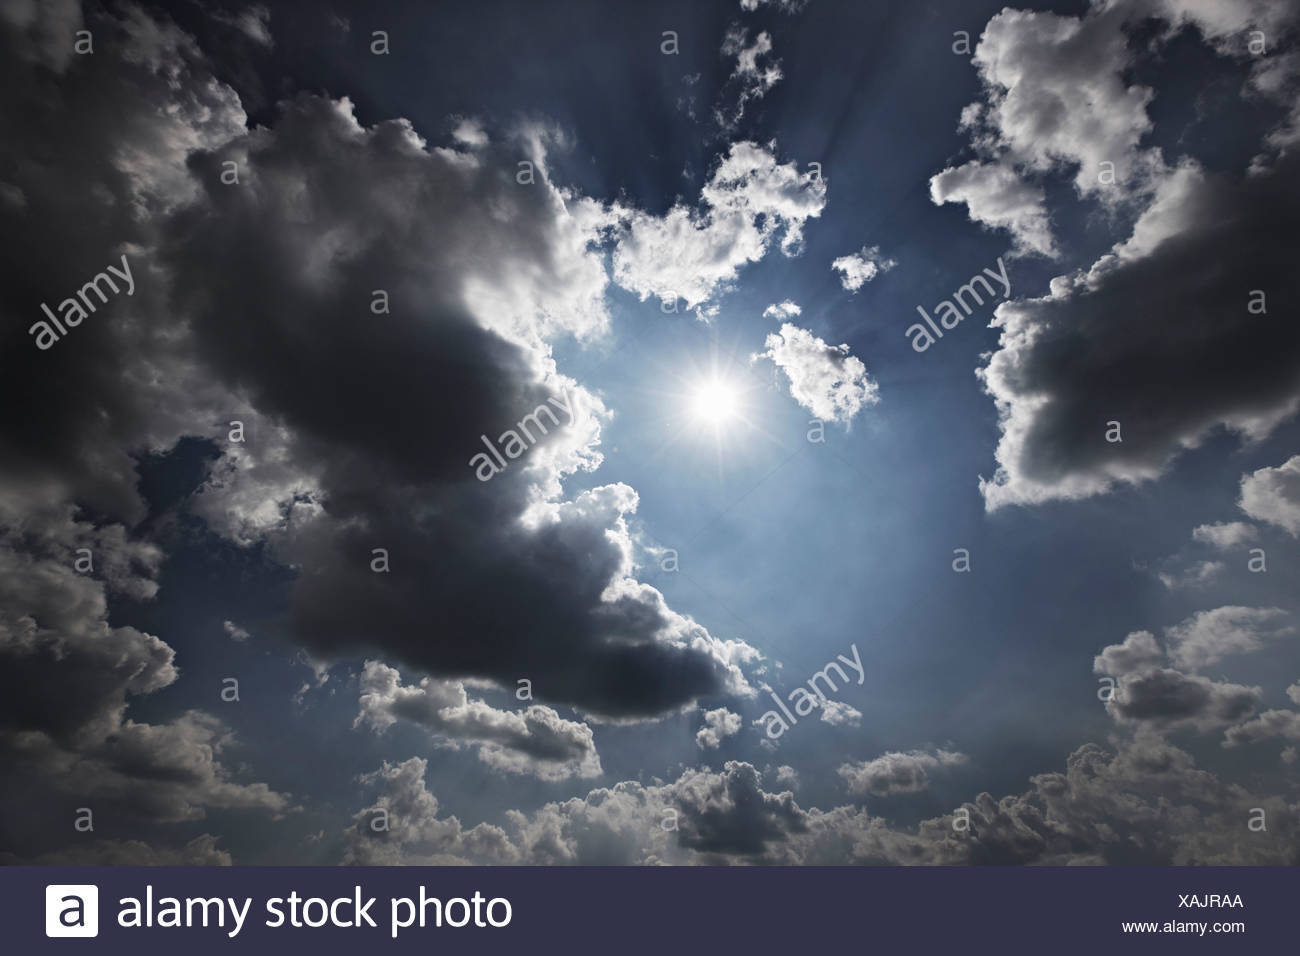 Sun and clouds in blue sky - Stock Image